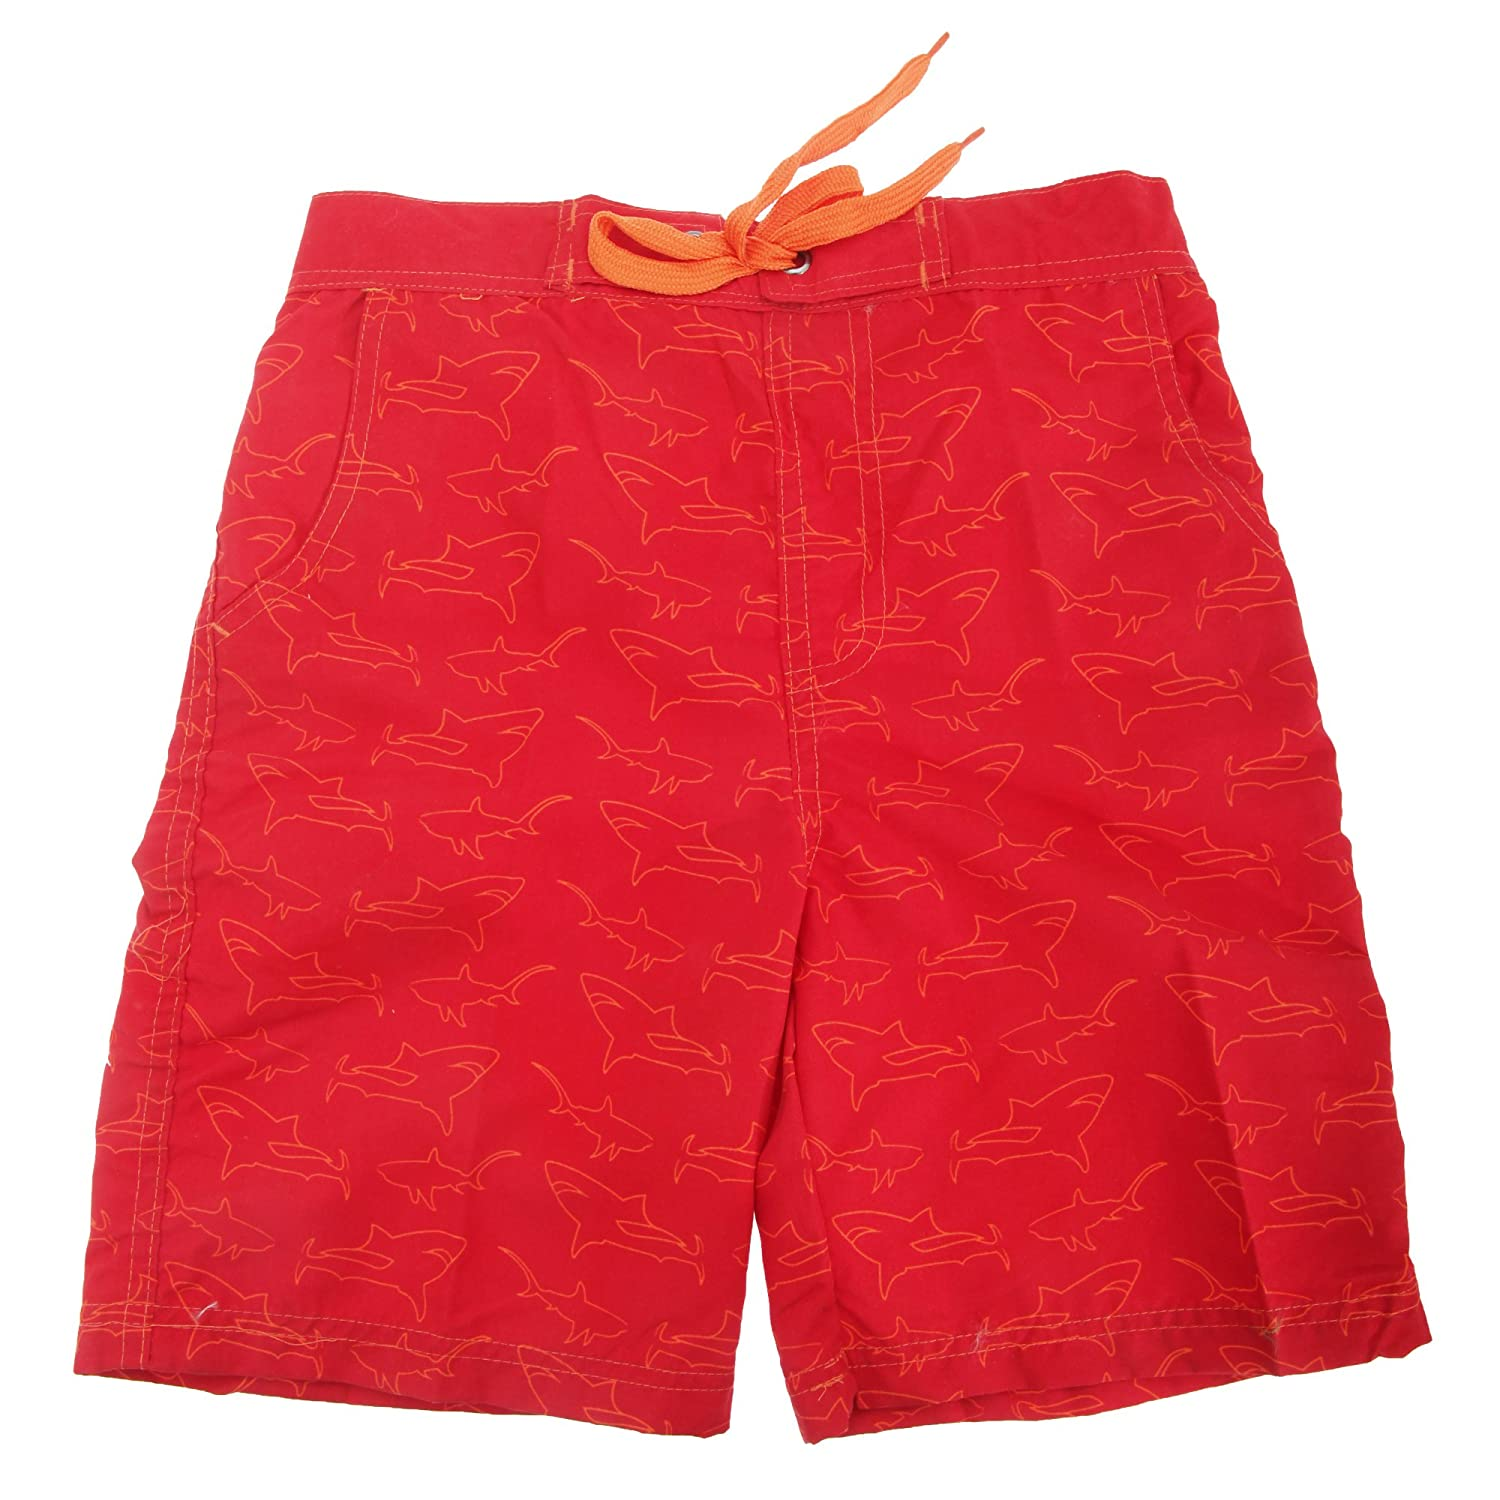 Childrens Boys Shark Print Lined Swim Shorts UTSWIM594_3